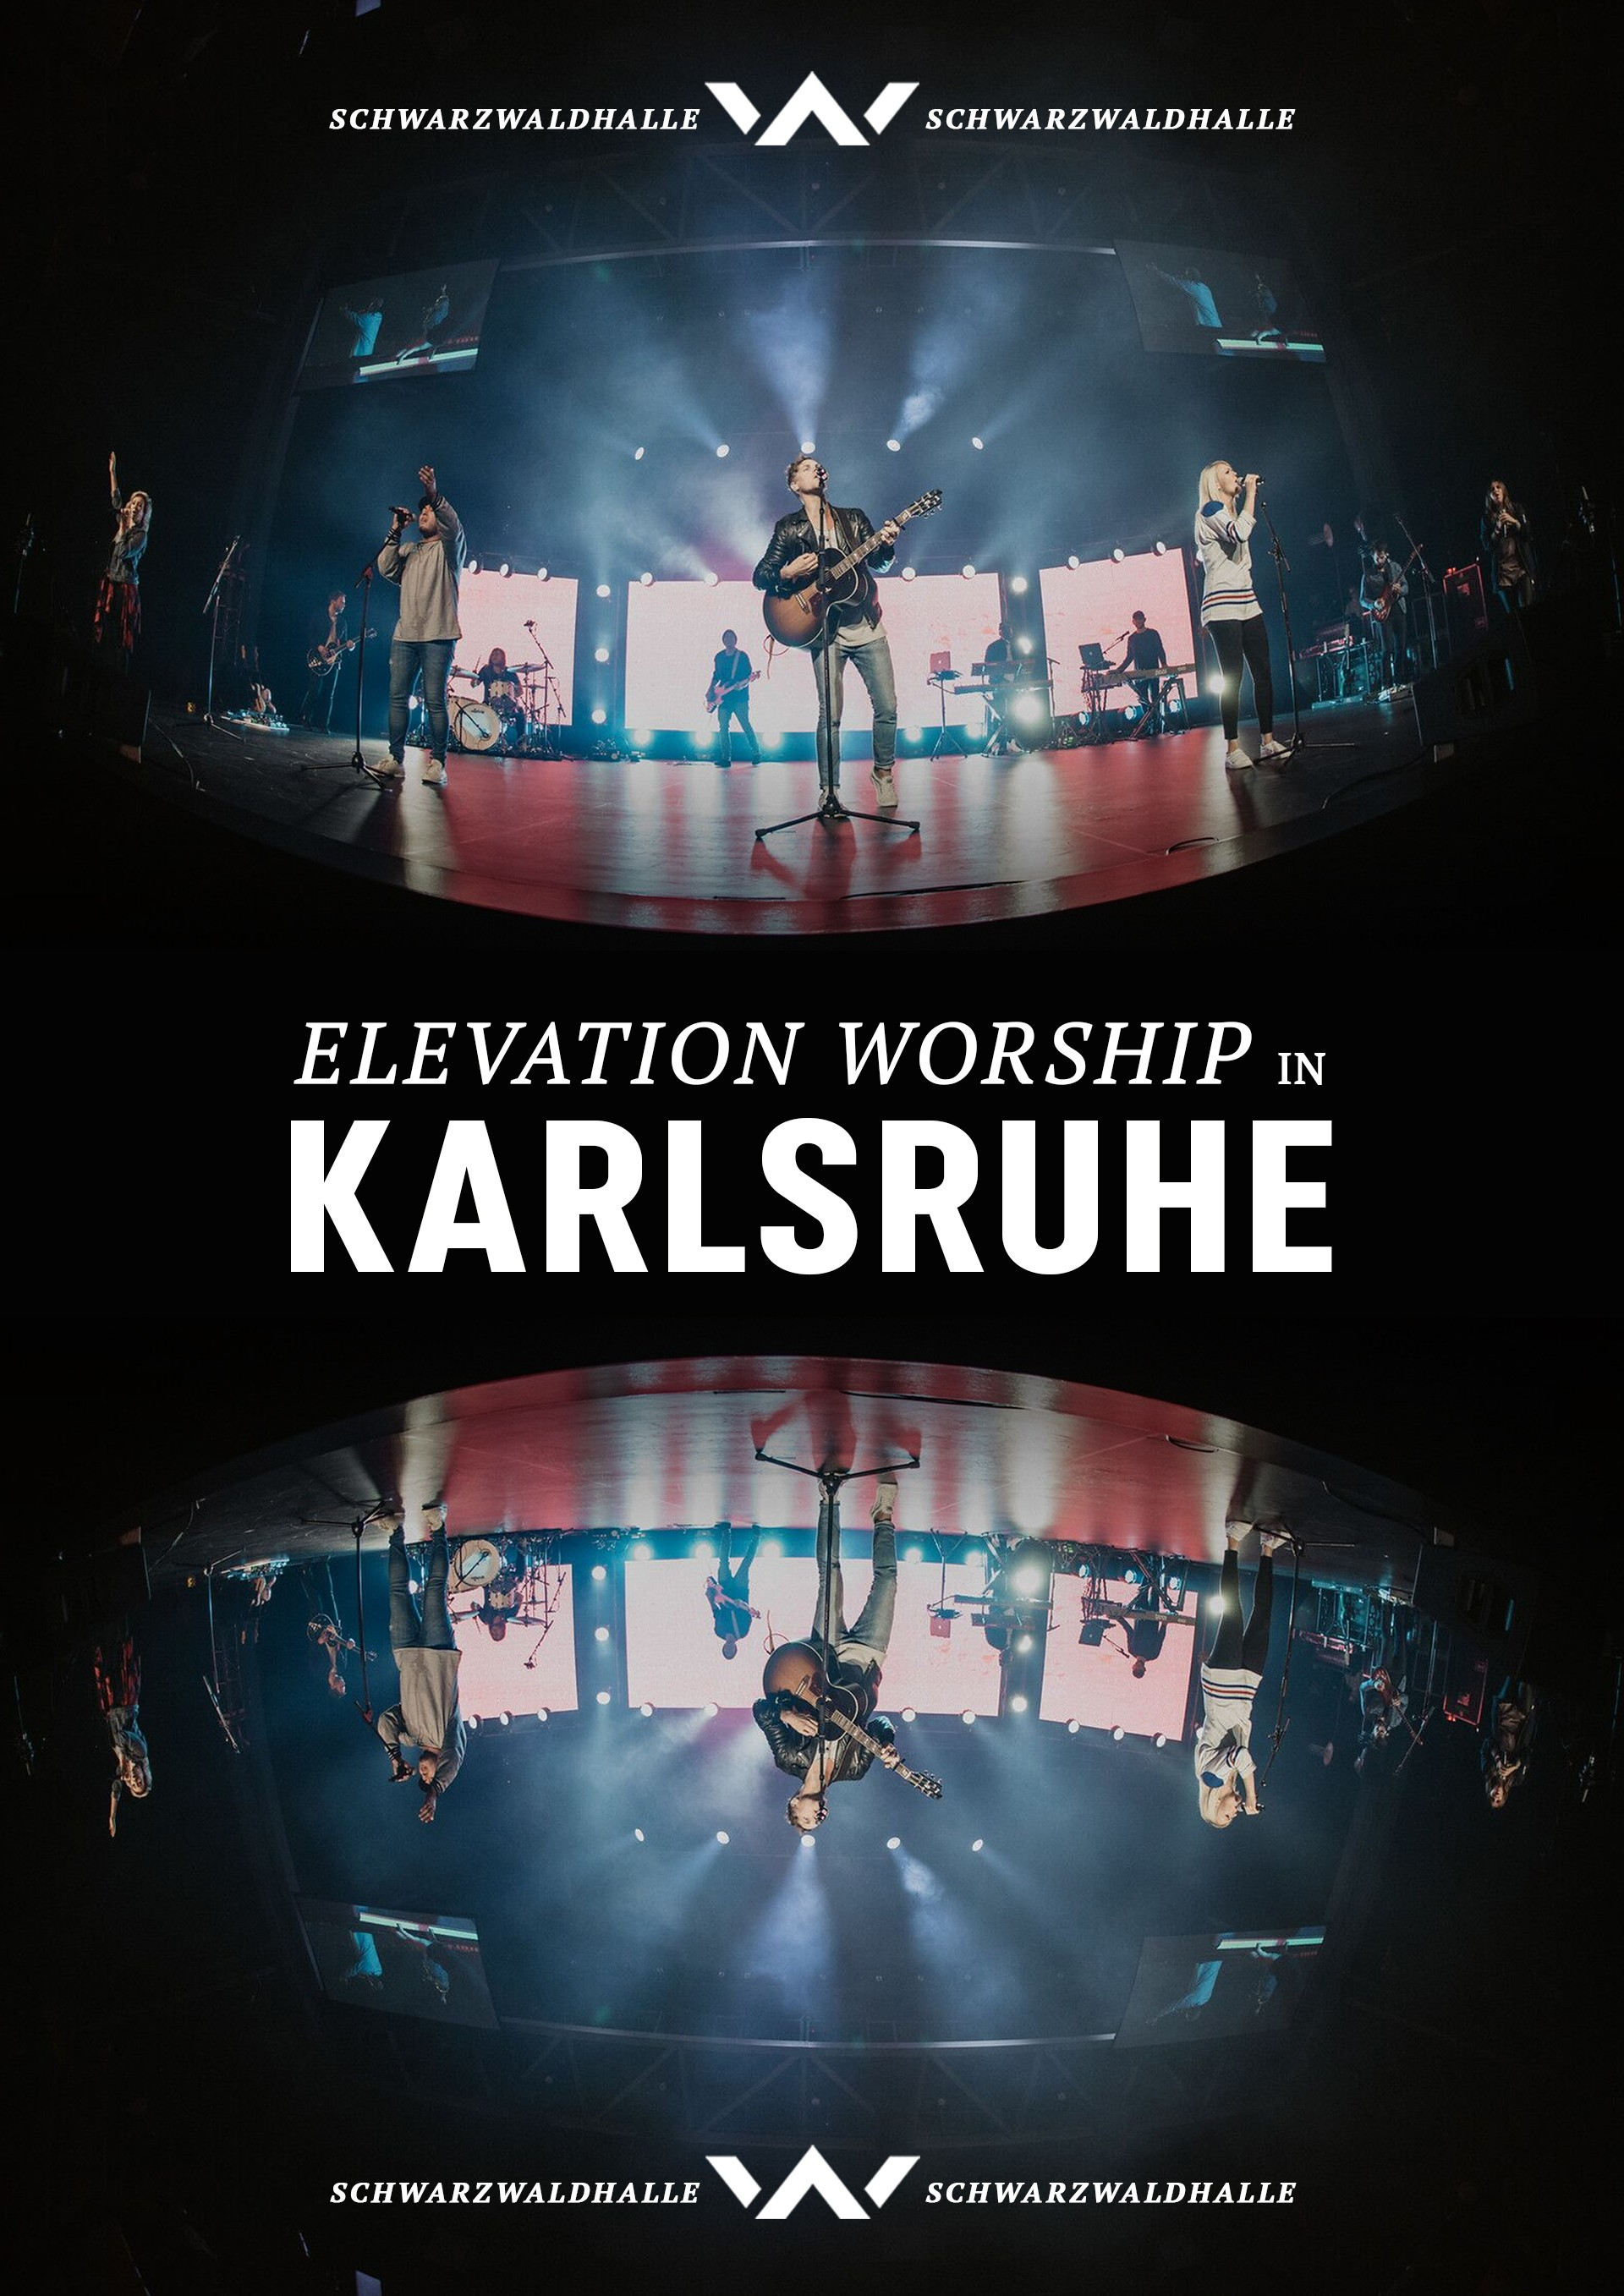 Heart Encounter - Elevation Worship in Karlsruhe